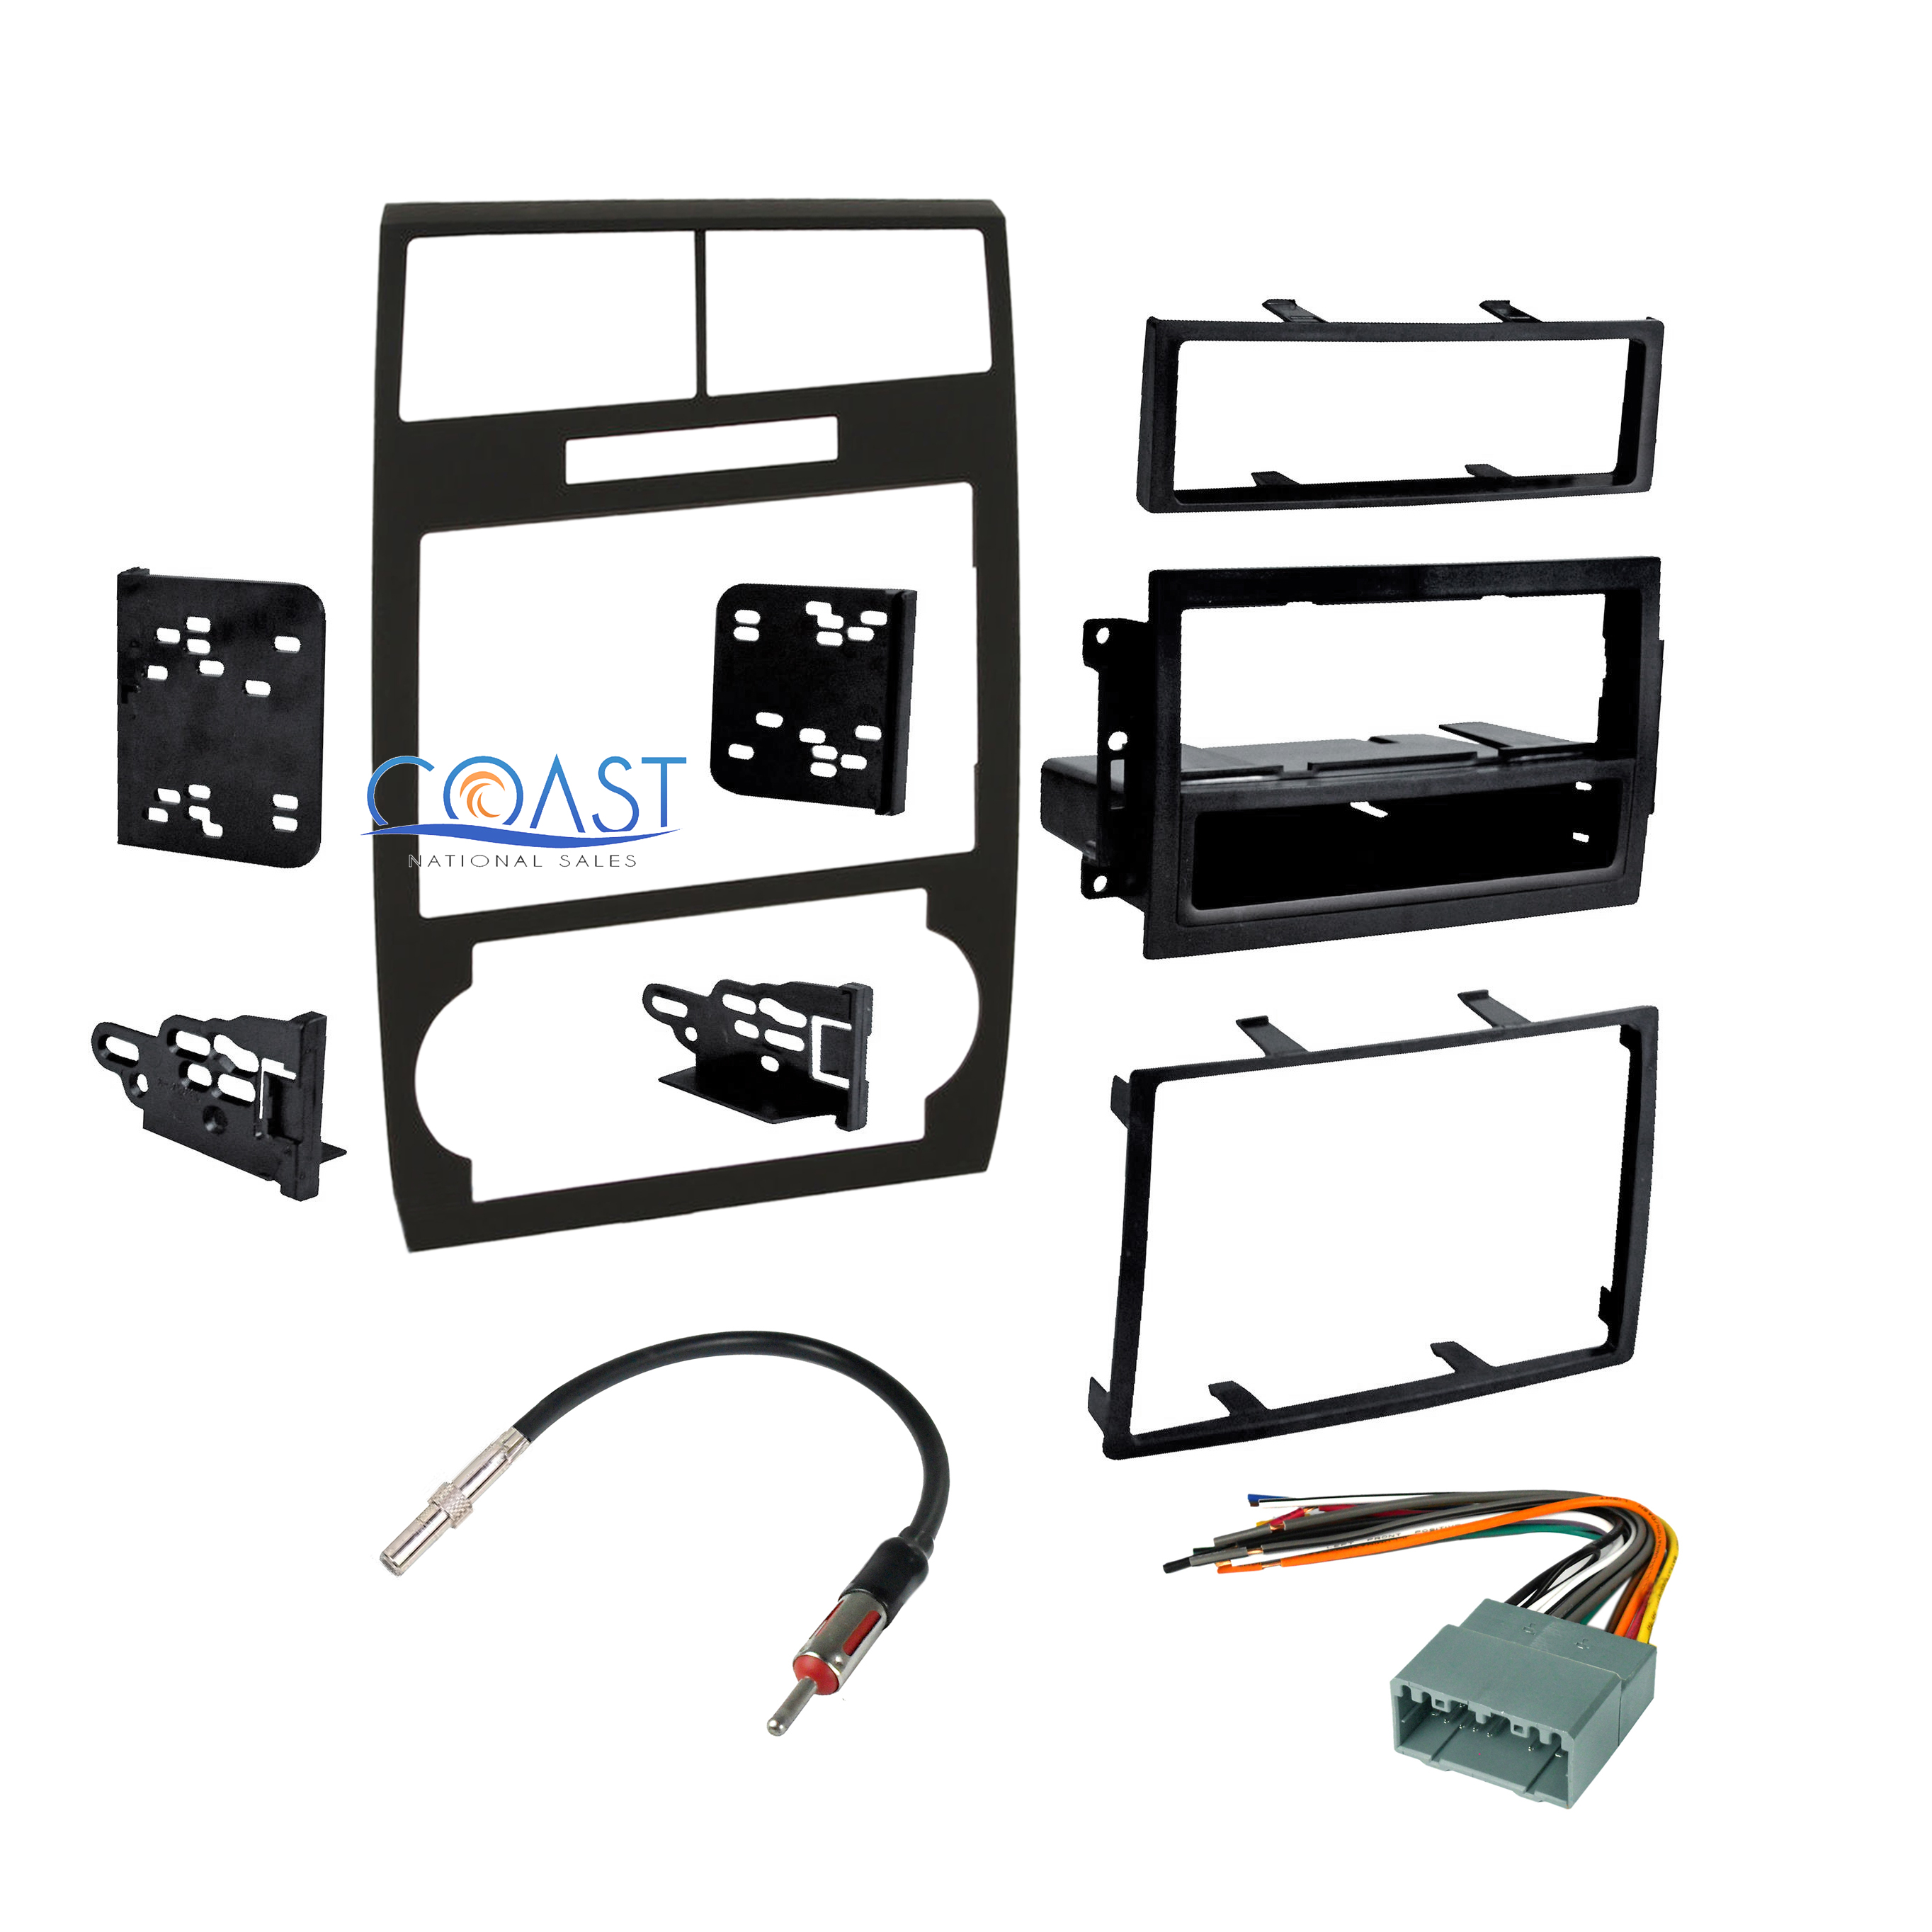 2006 Dodge Magnum Radio Wiring Harness : Stereo double din dash kit harness antenna for